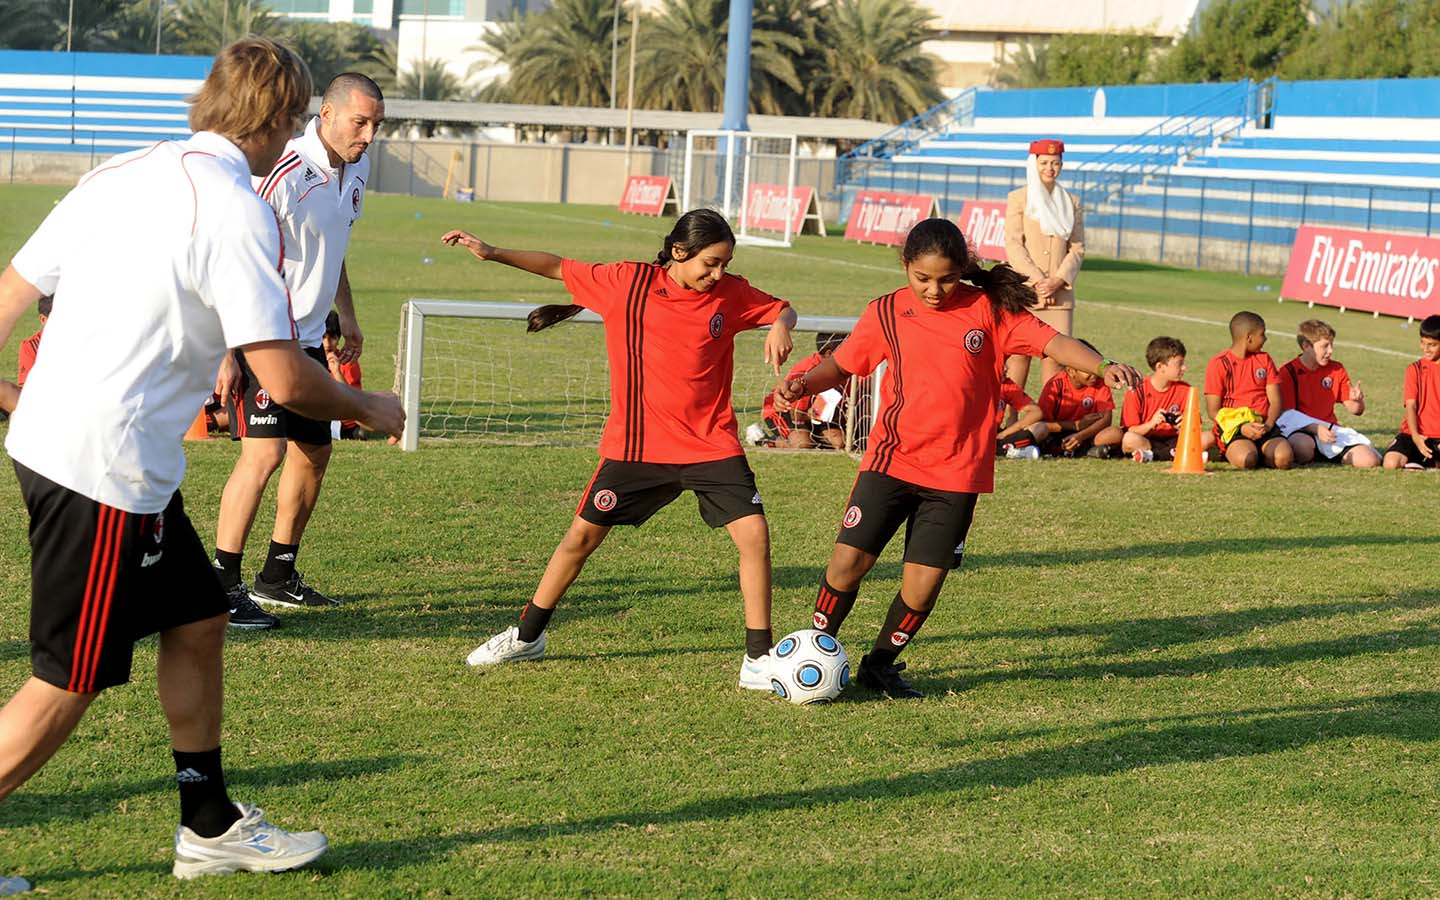 Girls playing football under the surveillance of a coach